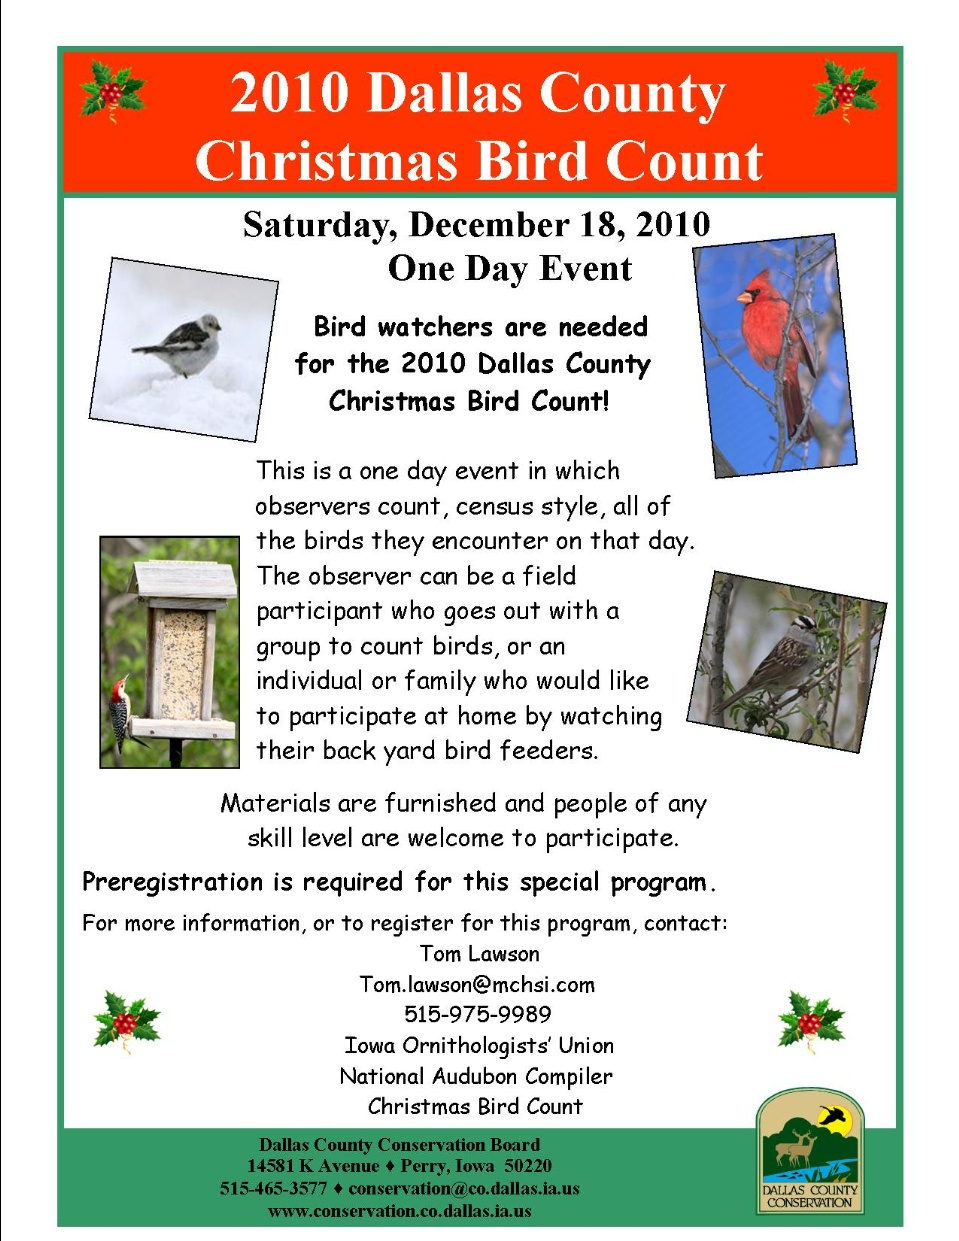 2010 Dallas County Christmas Bird Count